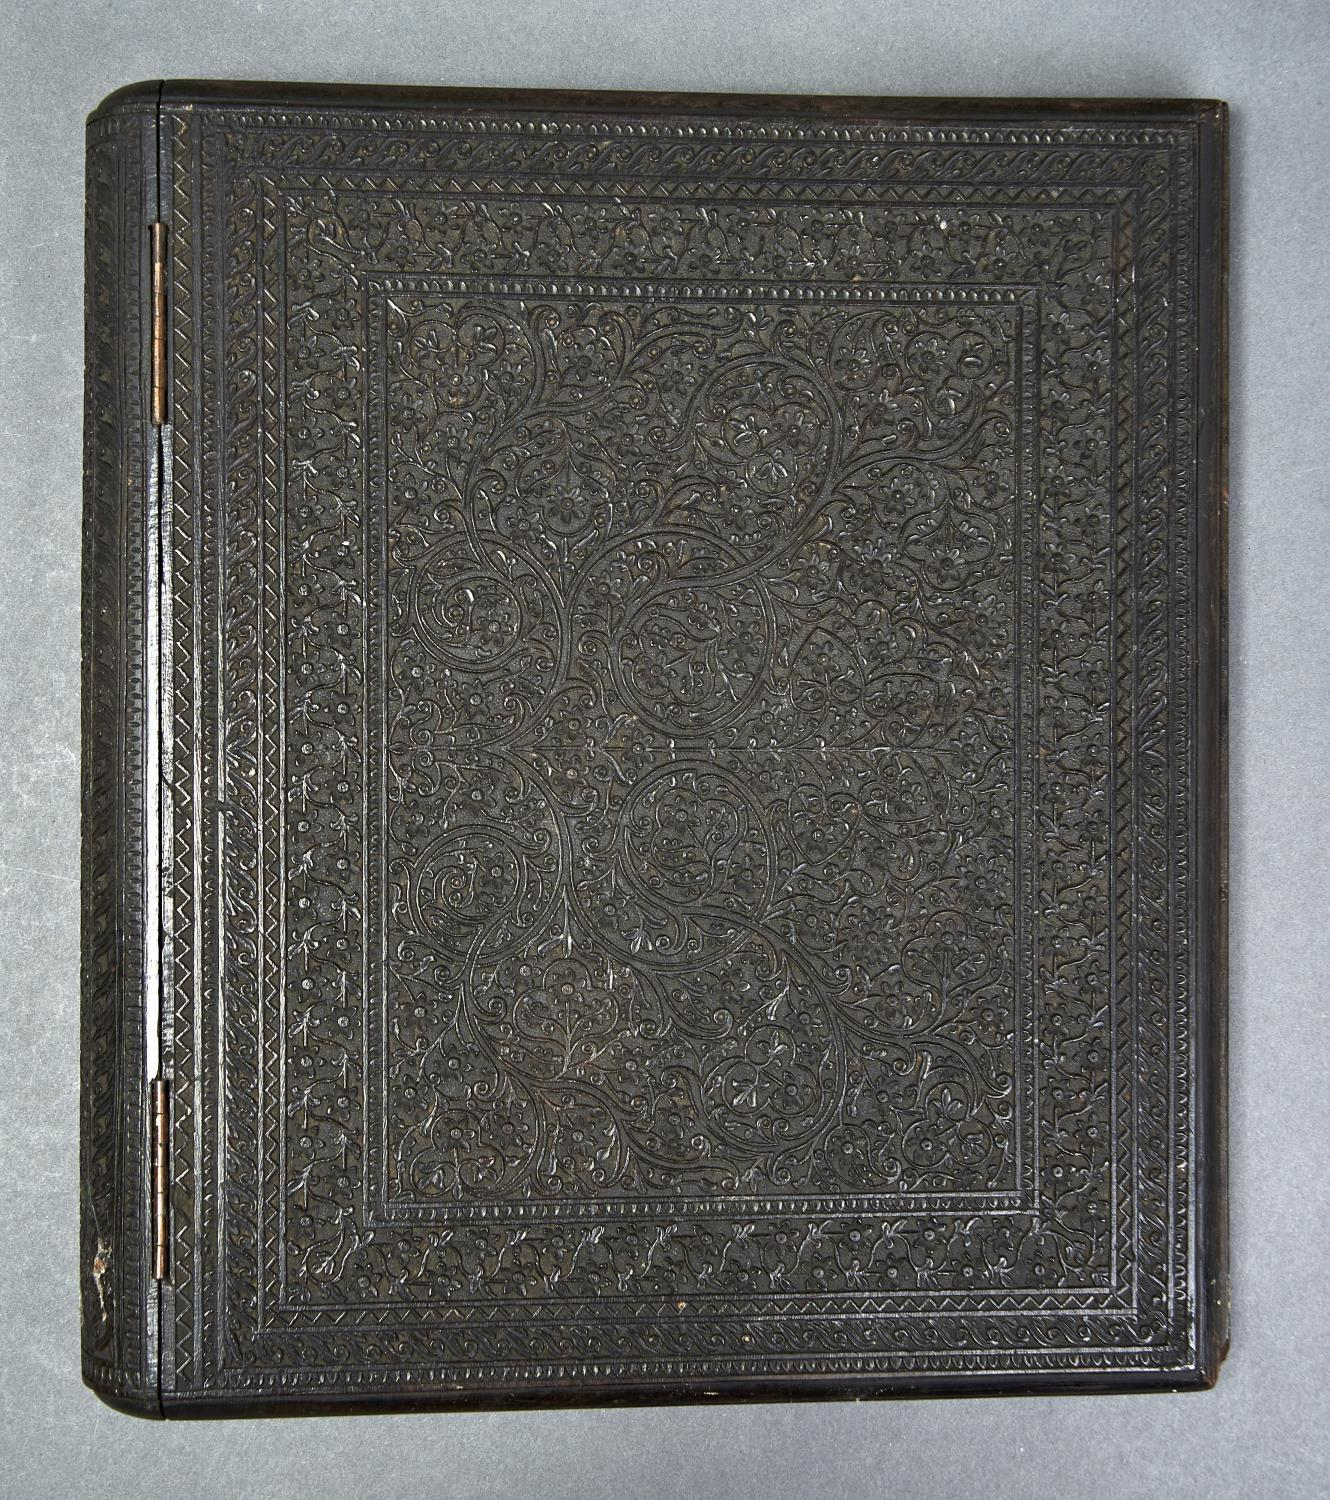 A CARVED EBONY BLOTTING BOOK, 19TH C,  WITH TENDRILS WITHIN CONFORMING FOLIATE PALMETTE BORDERS,